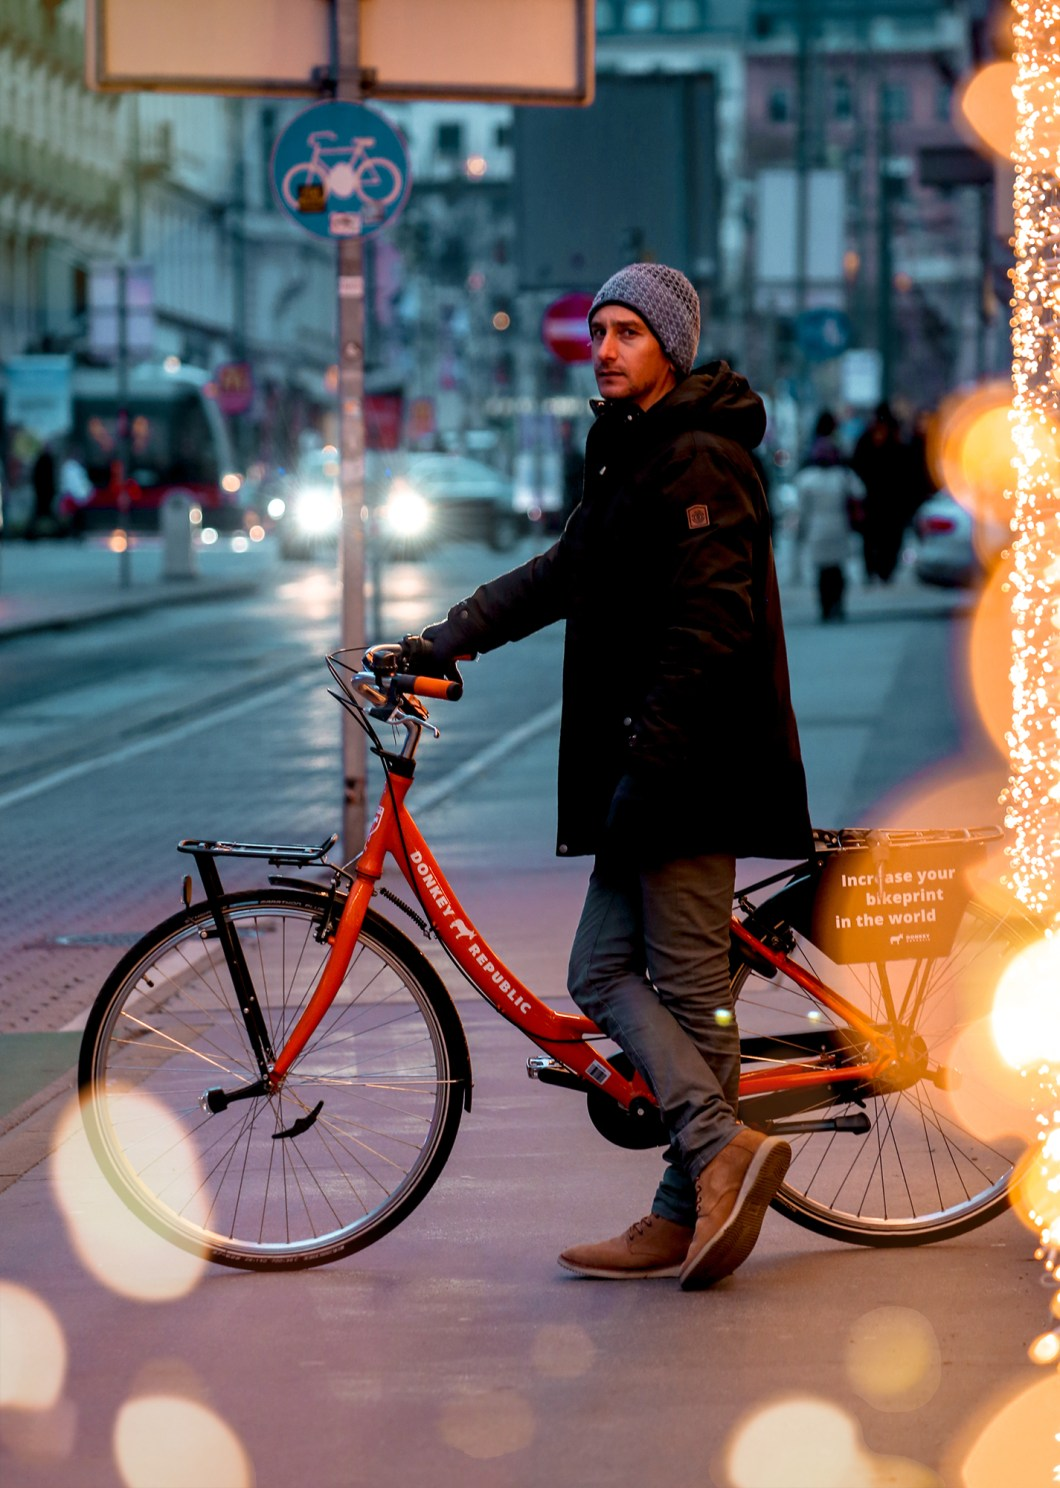 Christmas lights and bicycle in Vienna